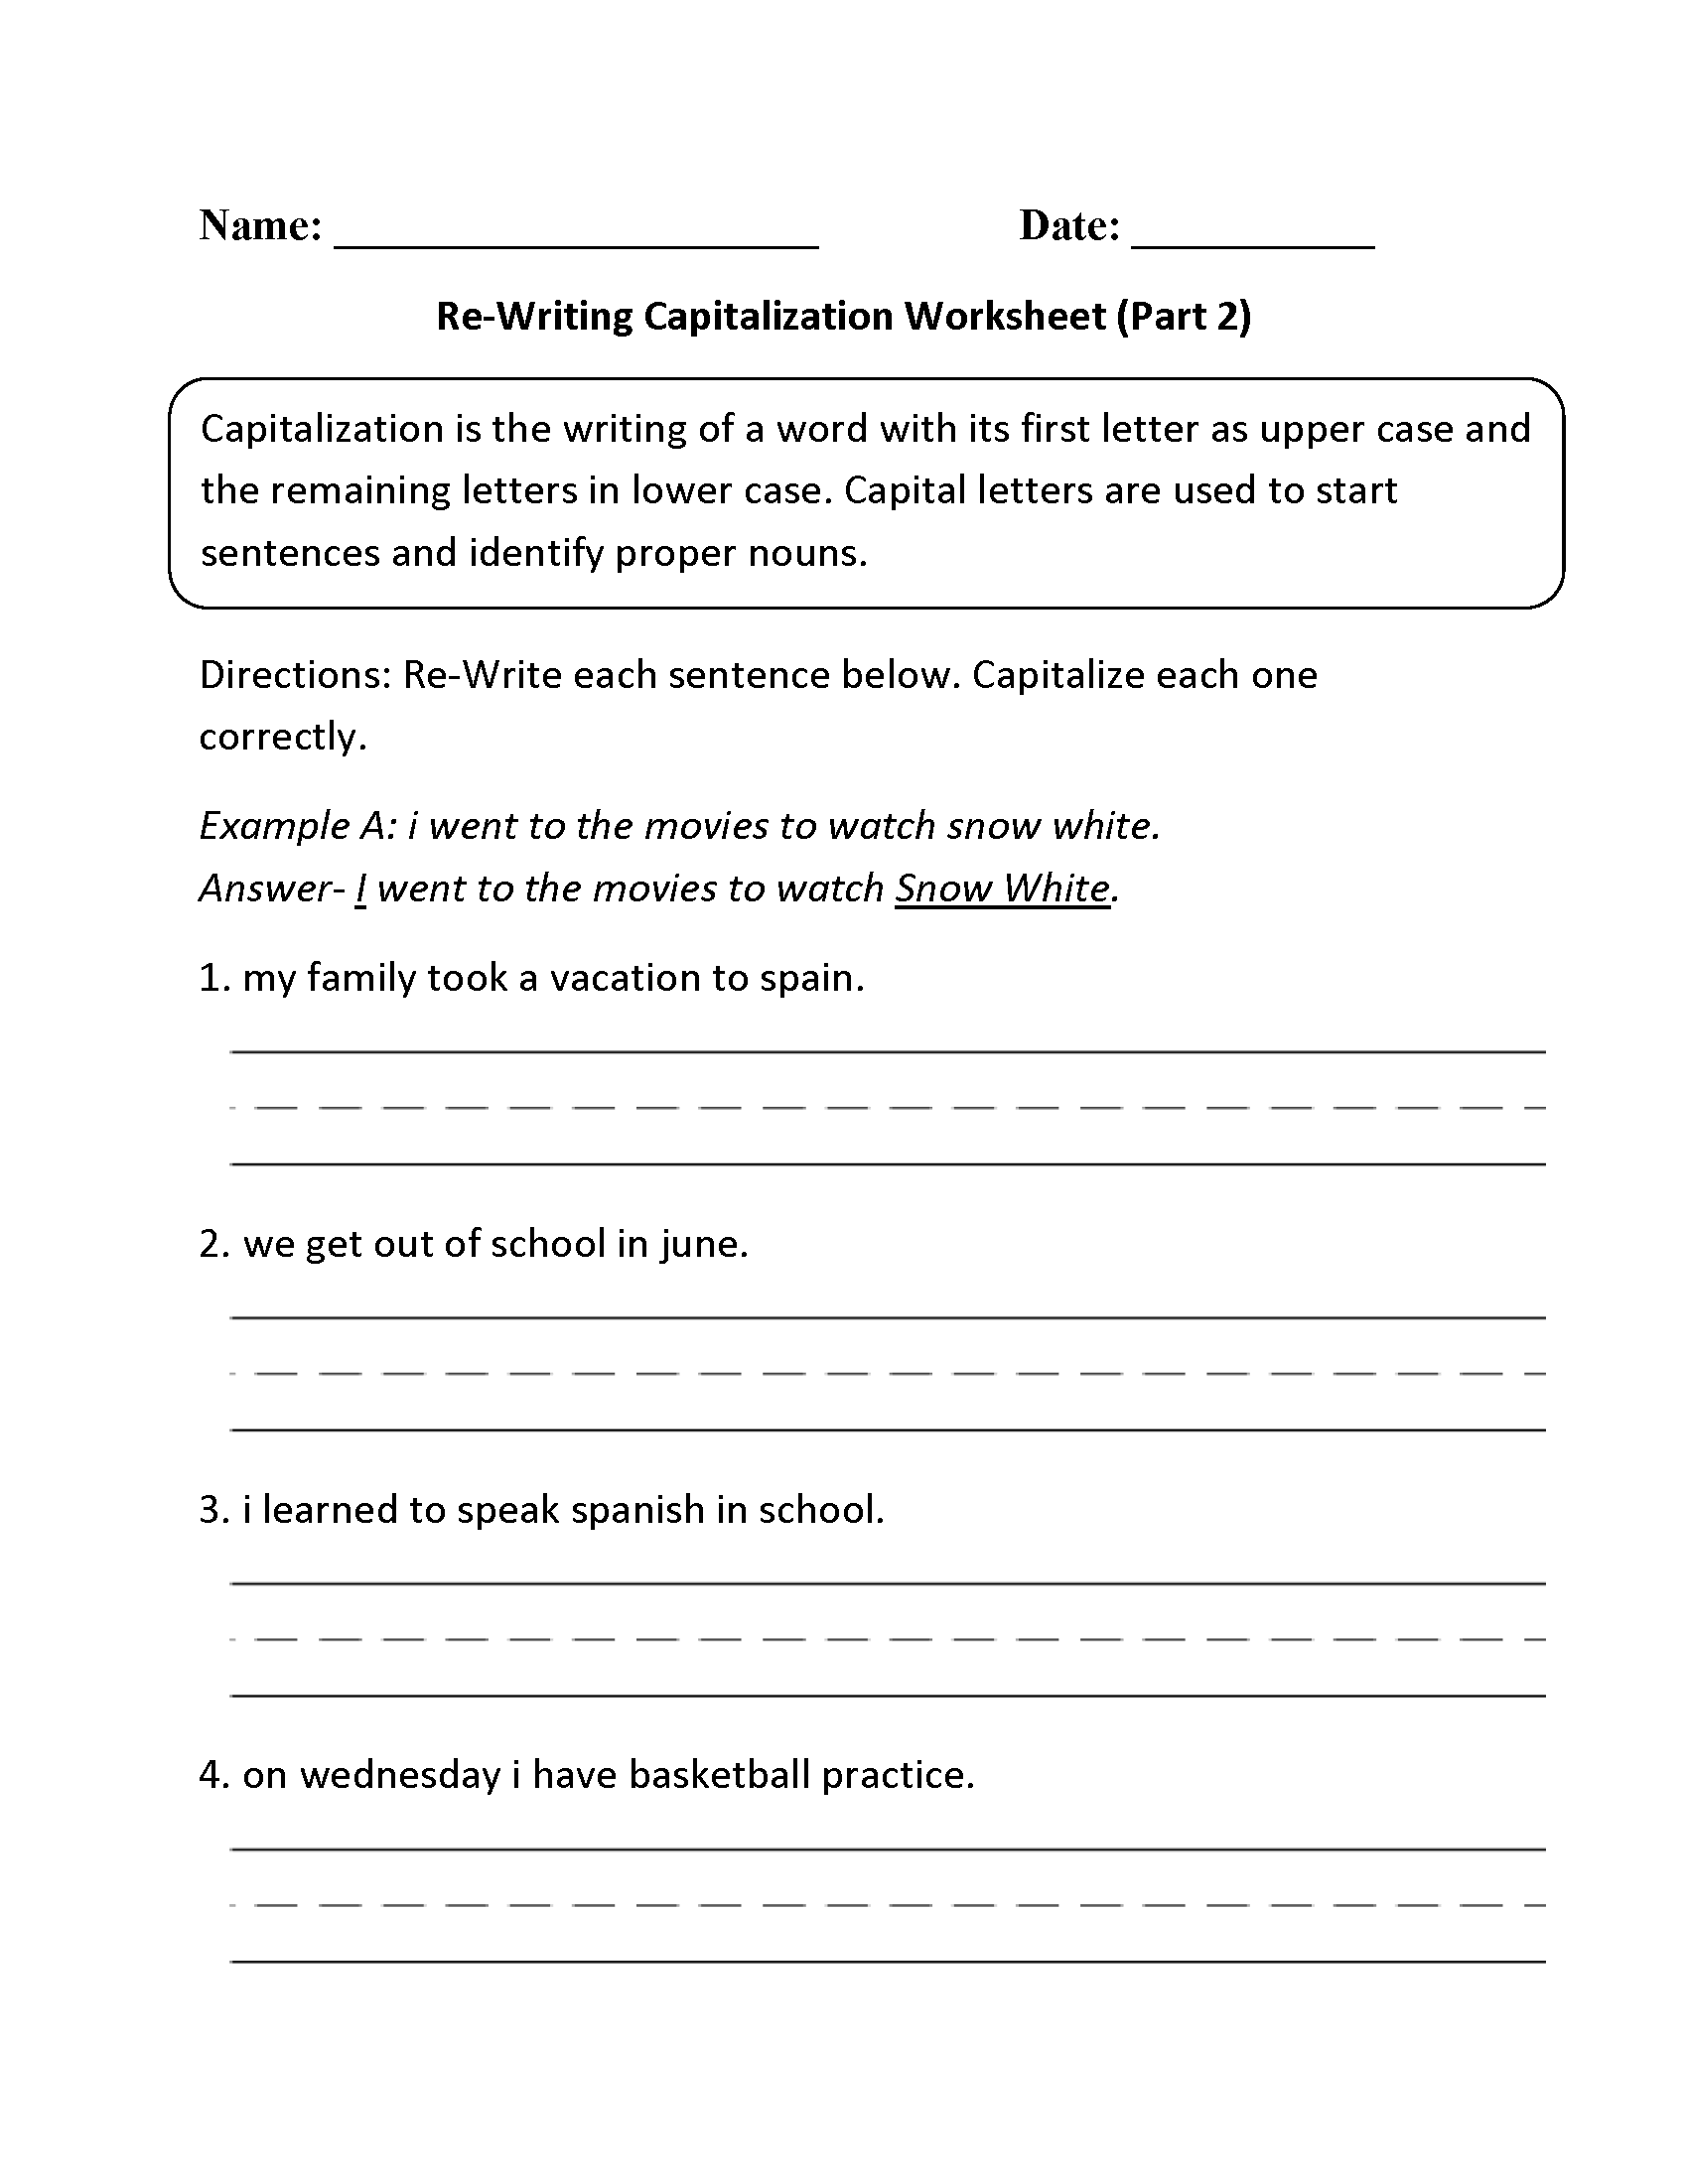 Printables Capitalization Worksheets englishlinx com capitalization worksheets re writing worksheet part 2